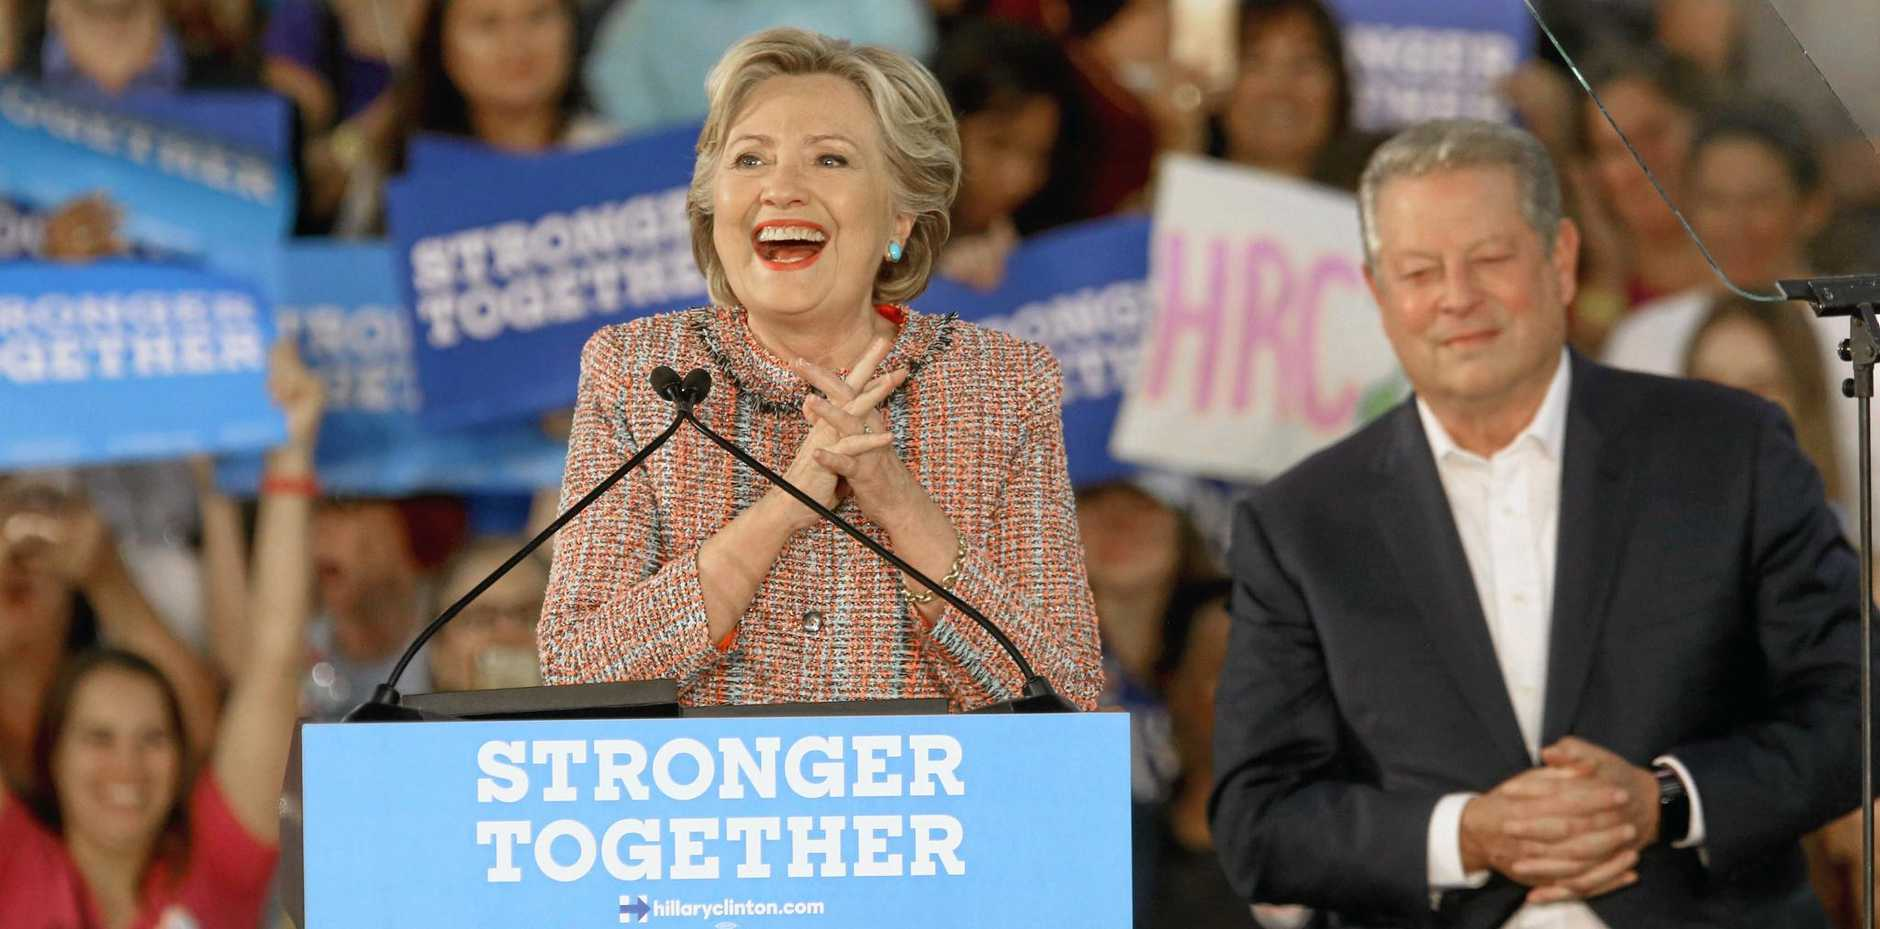 Democratic presidential candidate Hillary Clinton is joined at a Miami rally by former vice-president Al Gore.